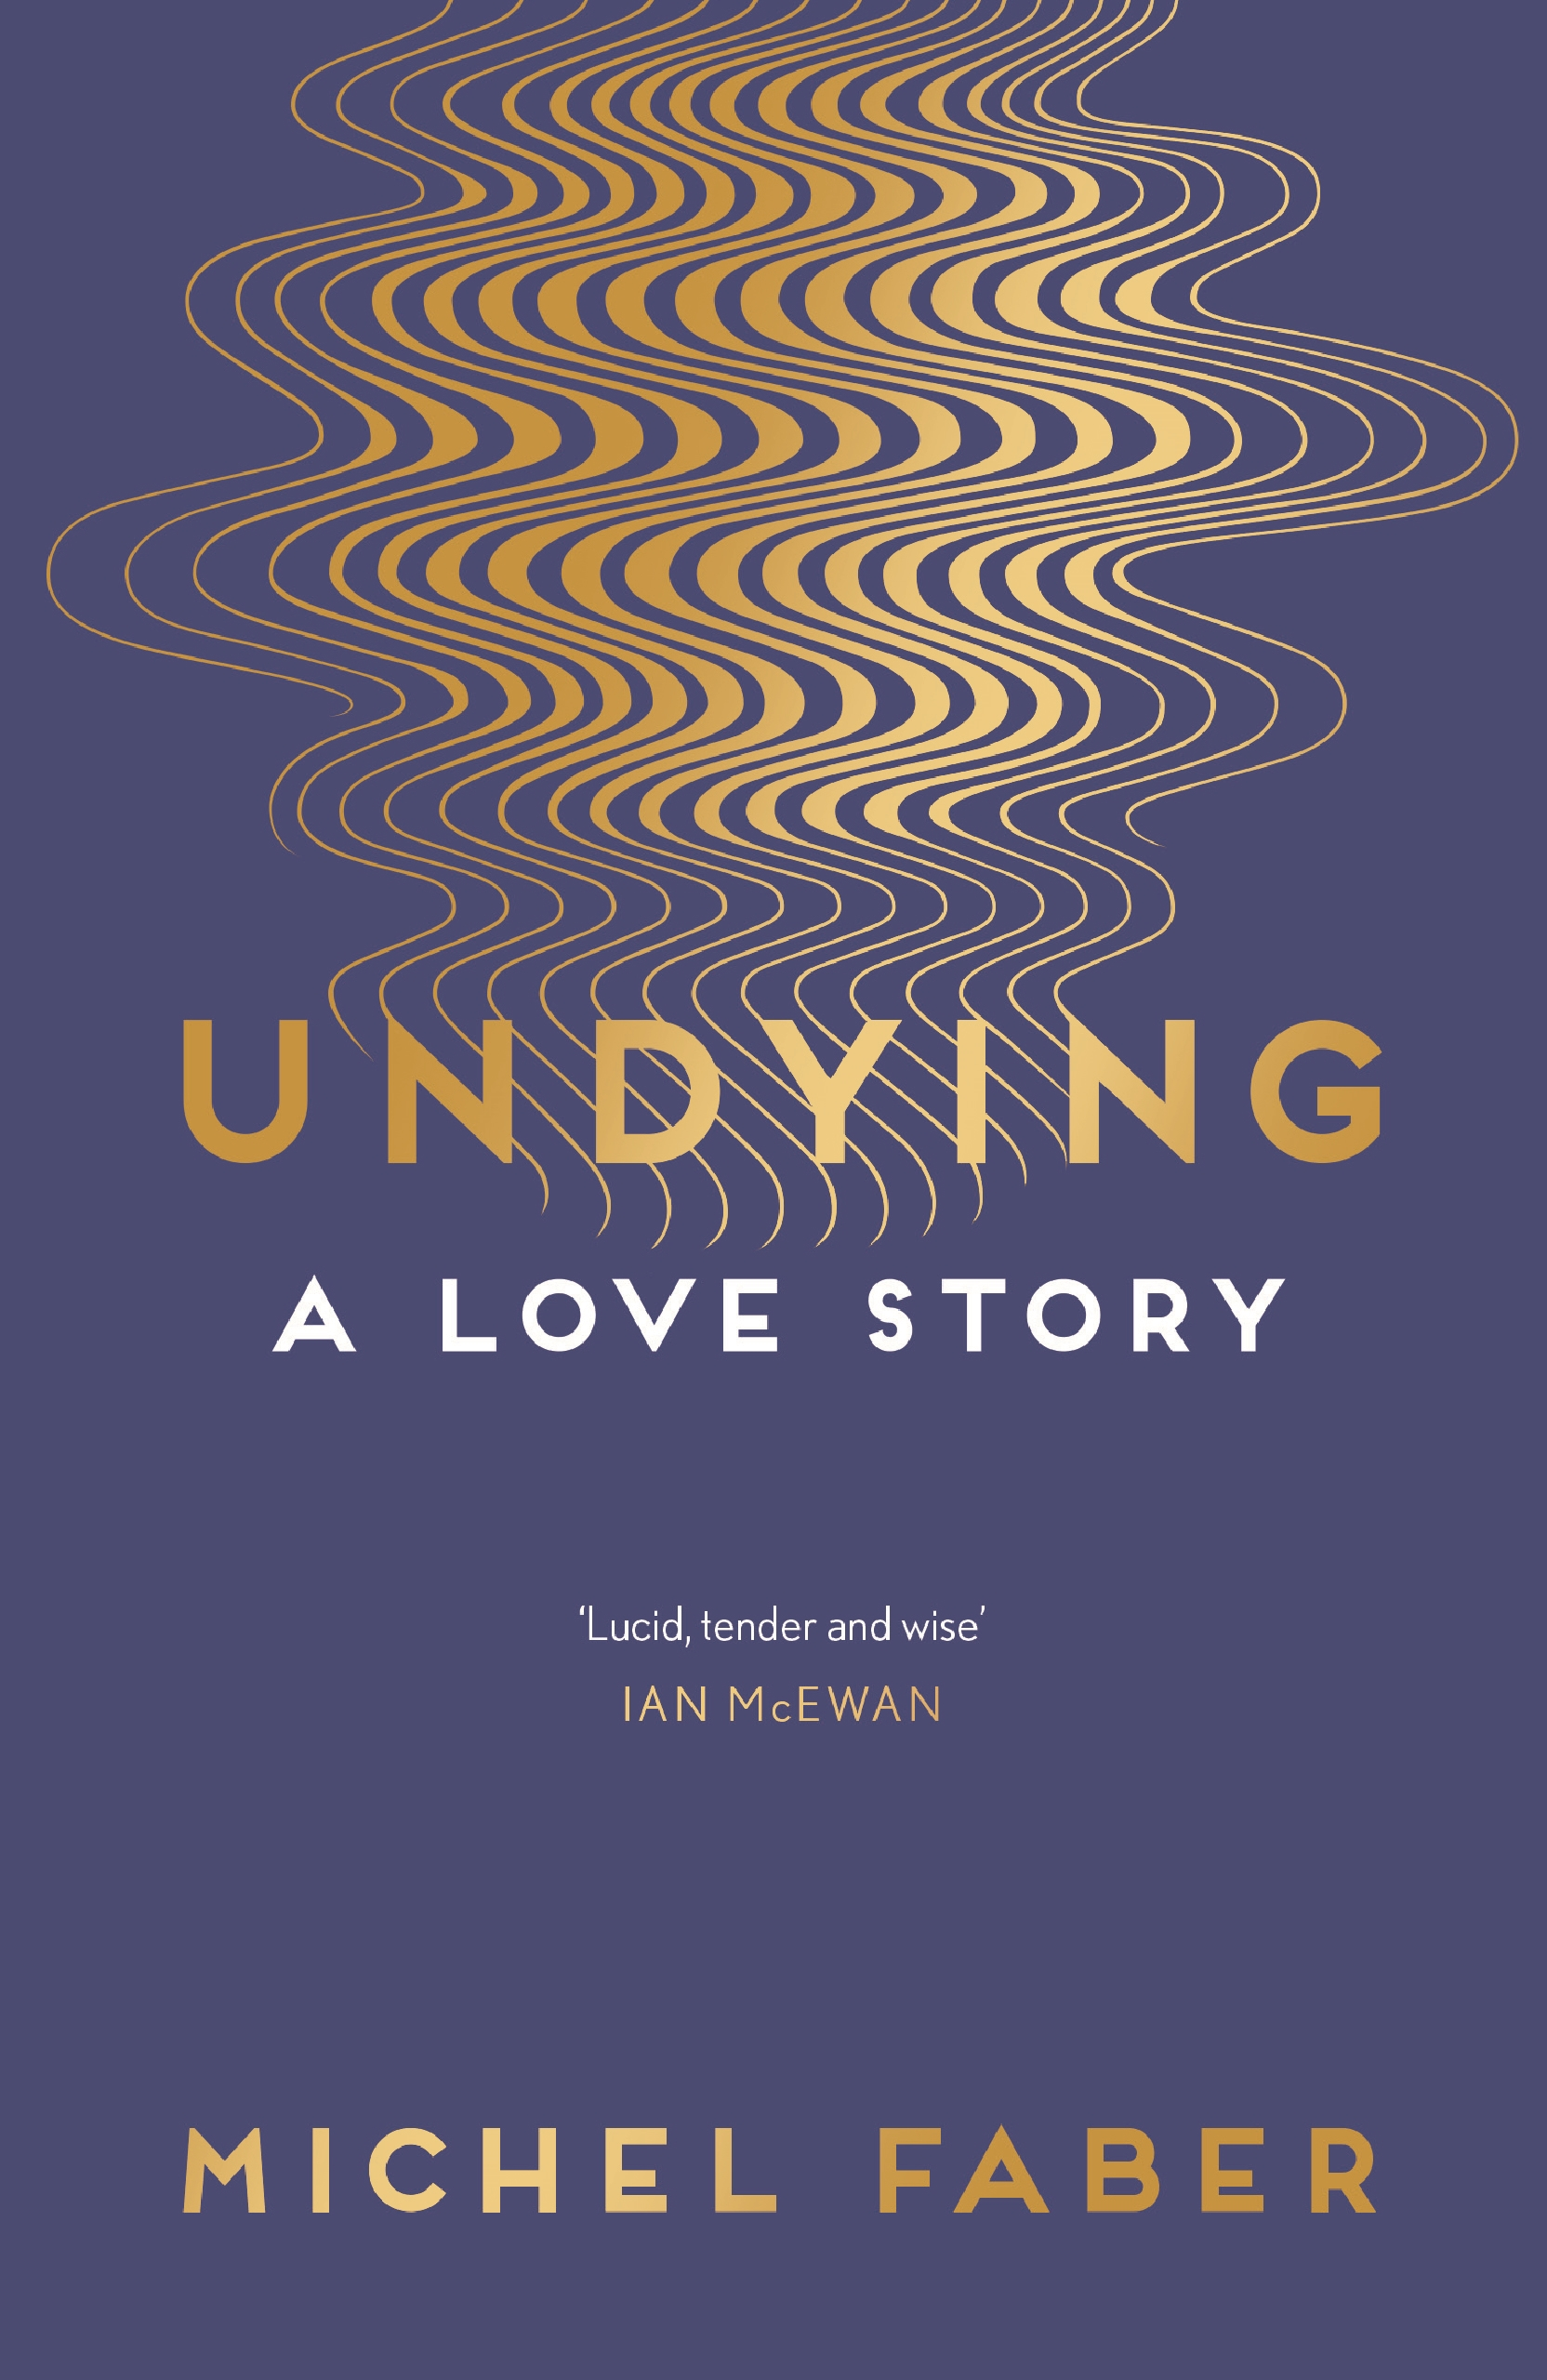 Image result for undying a love story michel faber